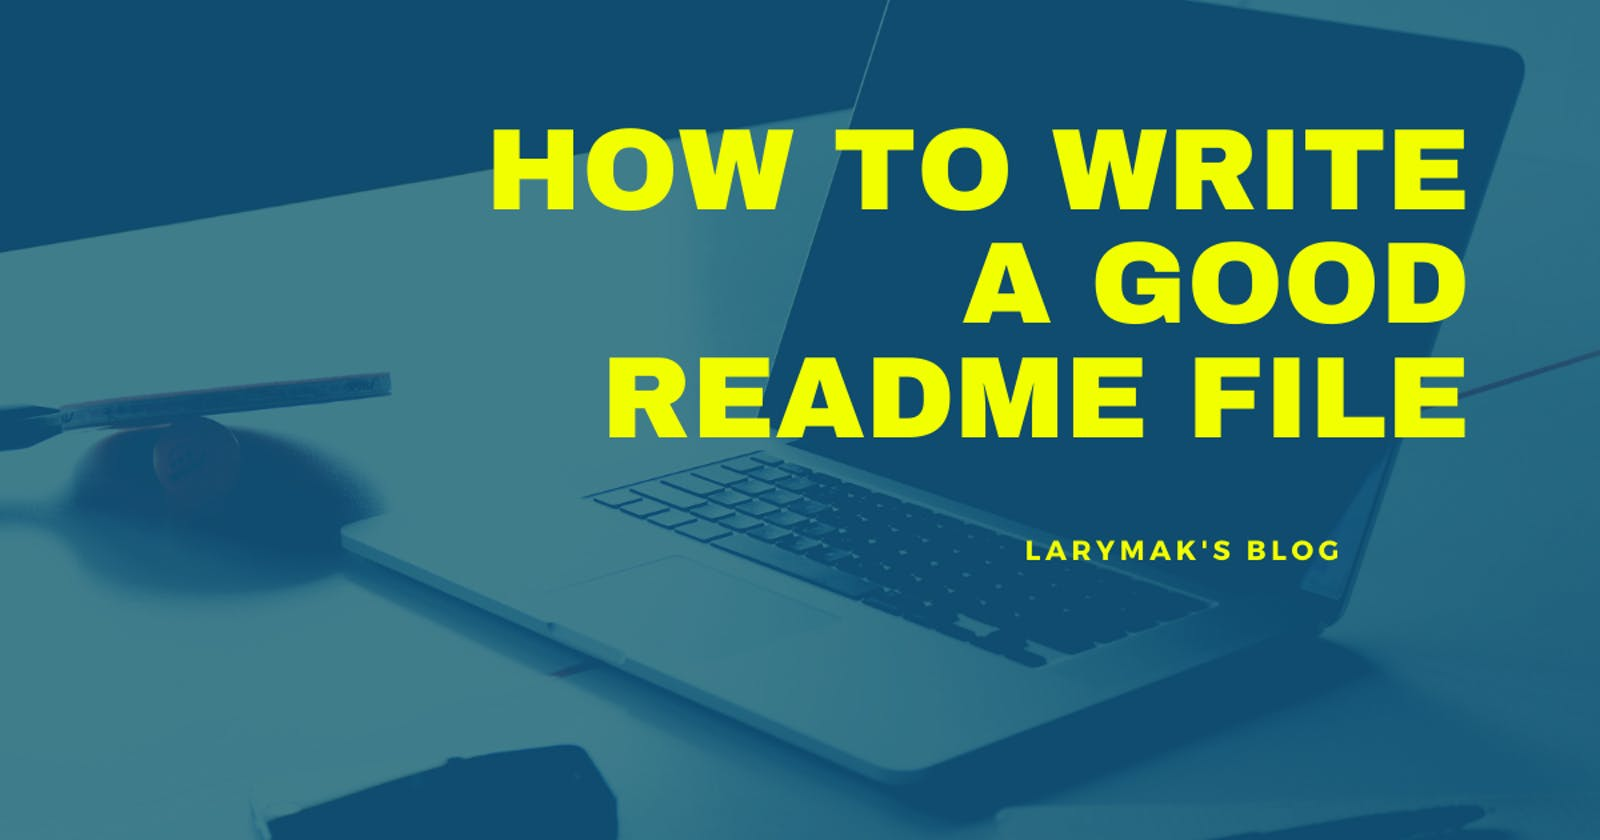 How To Write A Good README File